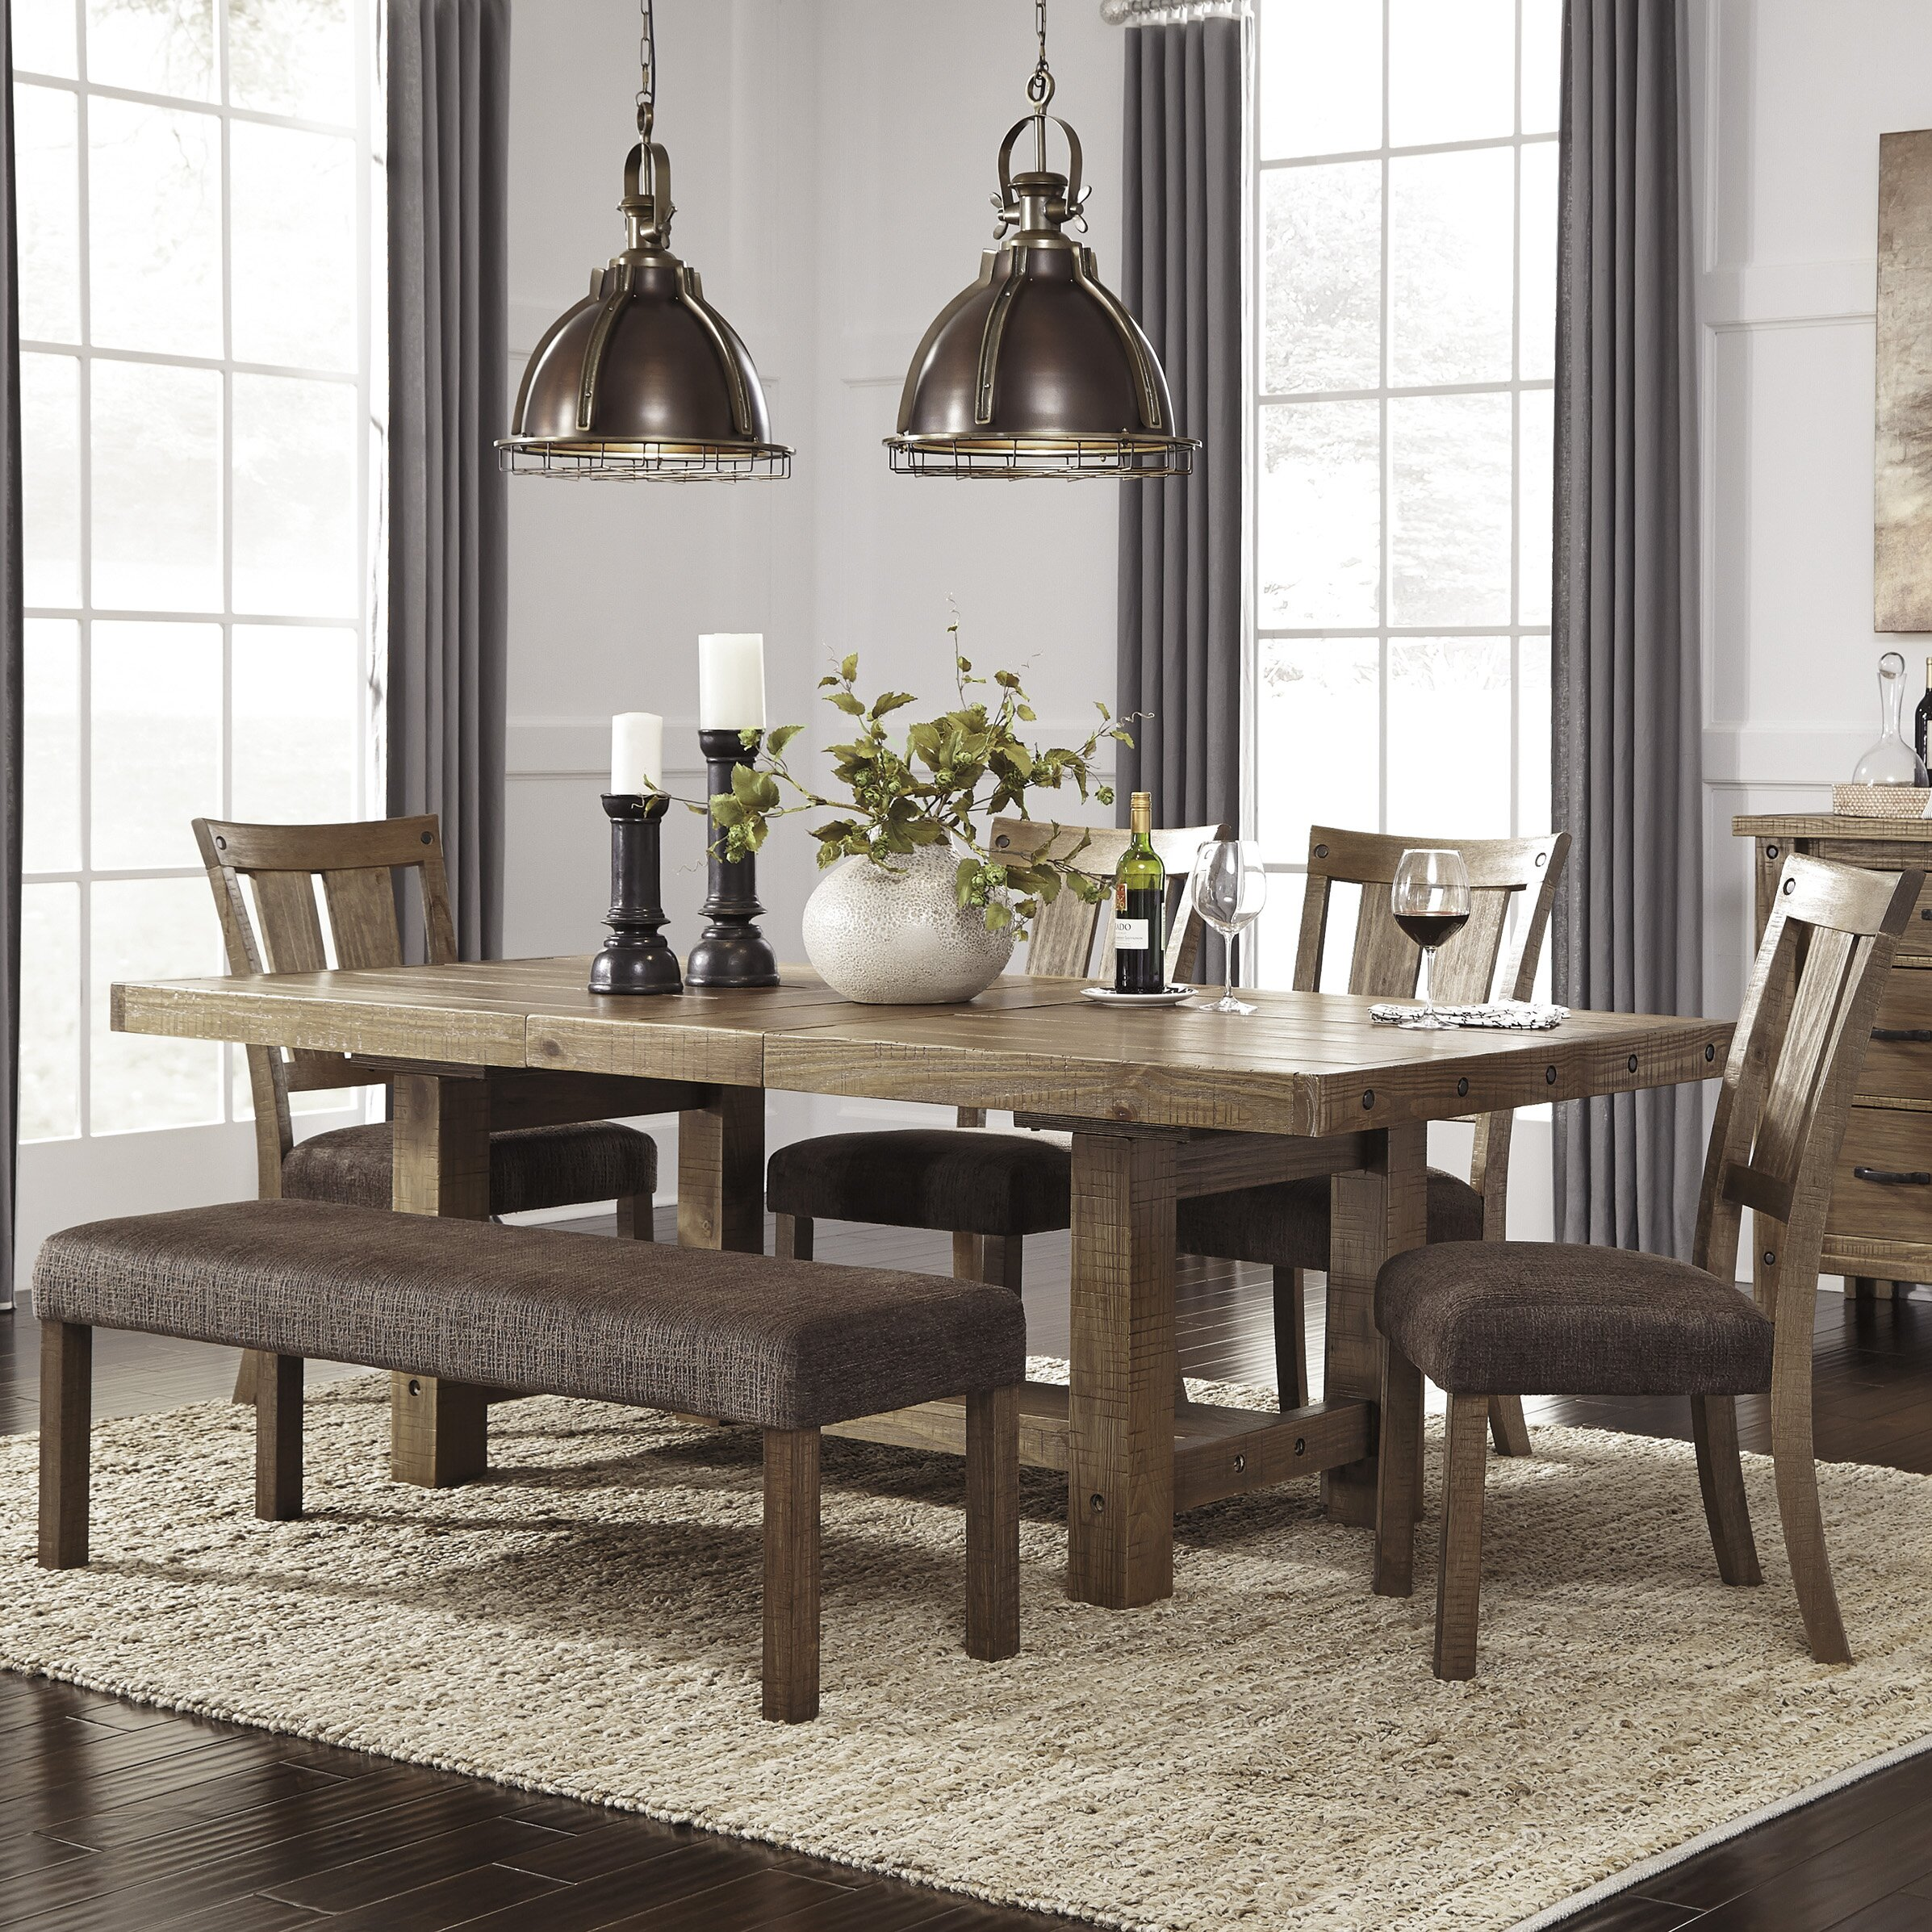 Signature design by ashley 9 piece dining set reviews for Kitchen dining sets